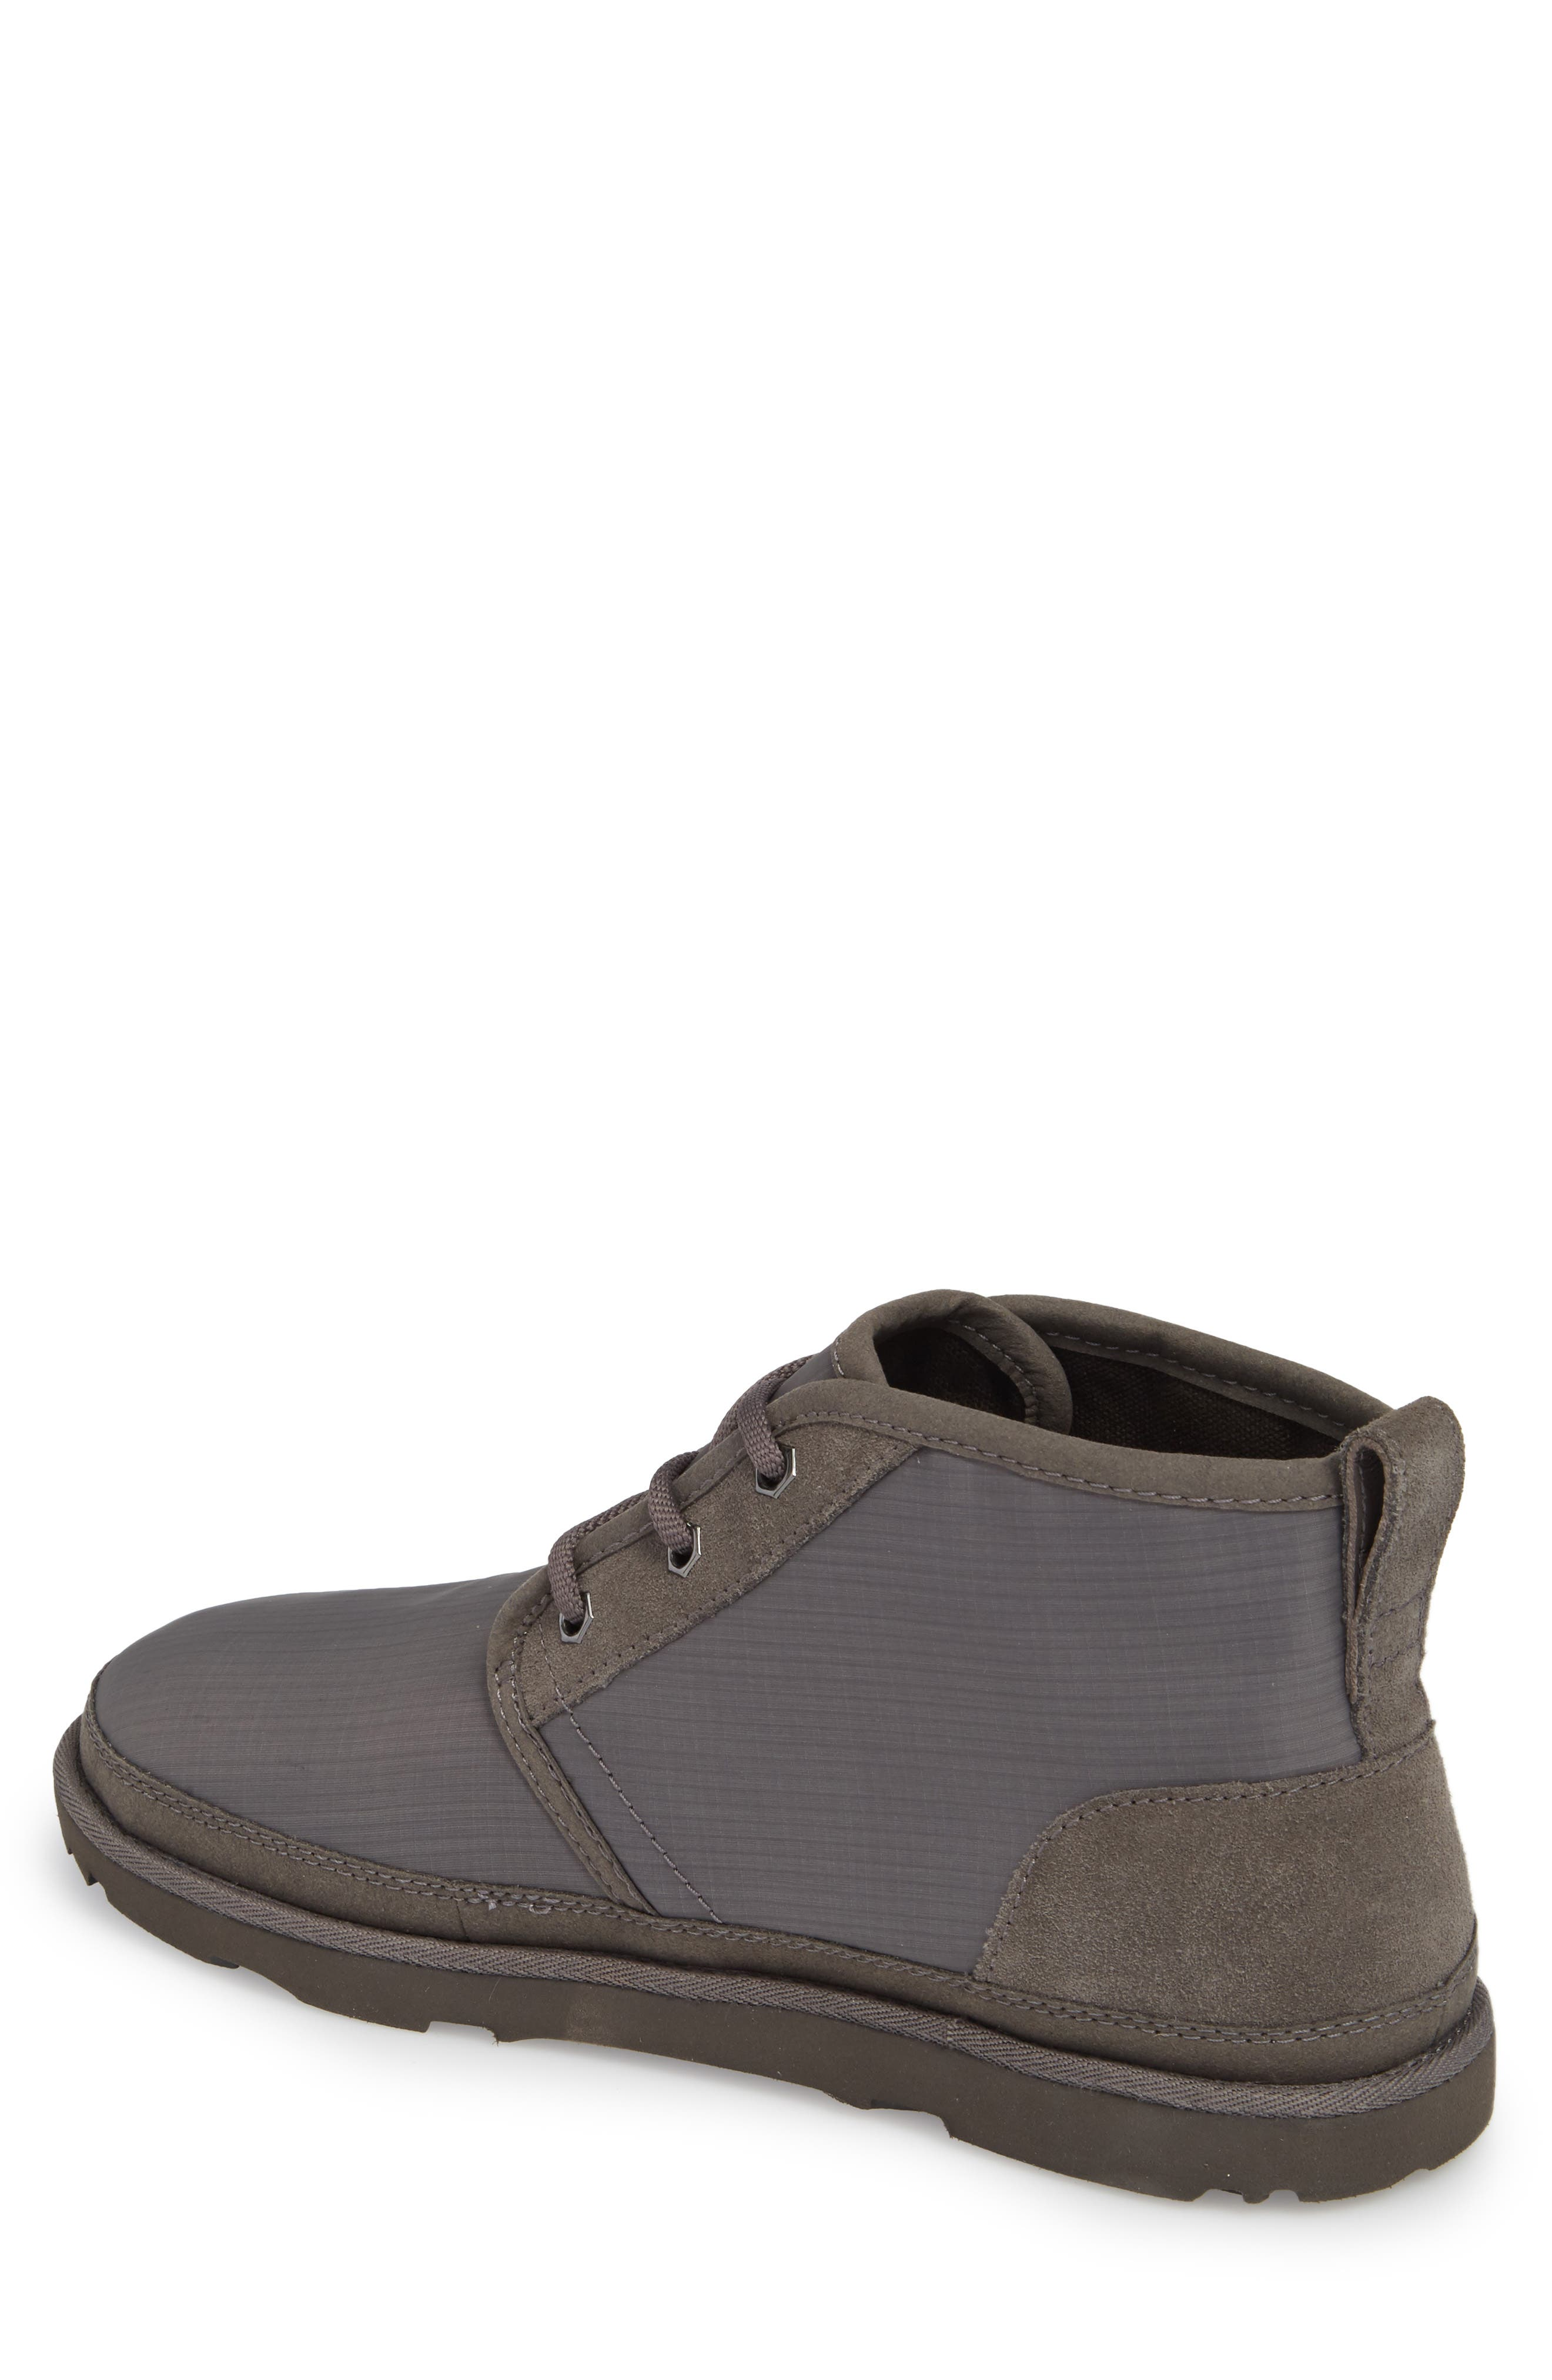 Neumel Ripstop Chukka Boot,                             Alternate thumbnail 2, color,                             CHARCOAL LEATHER